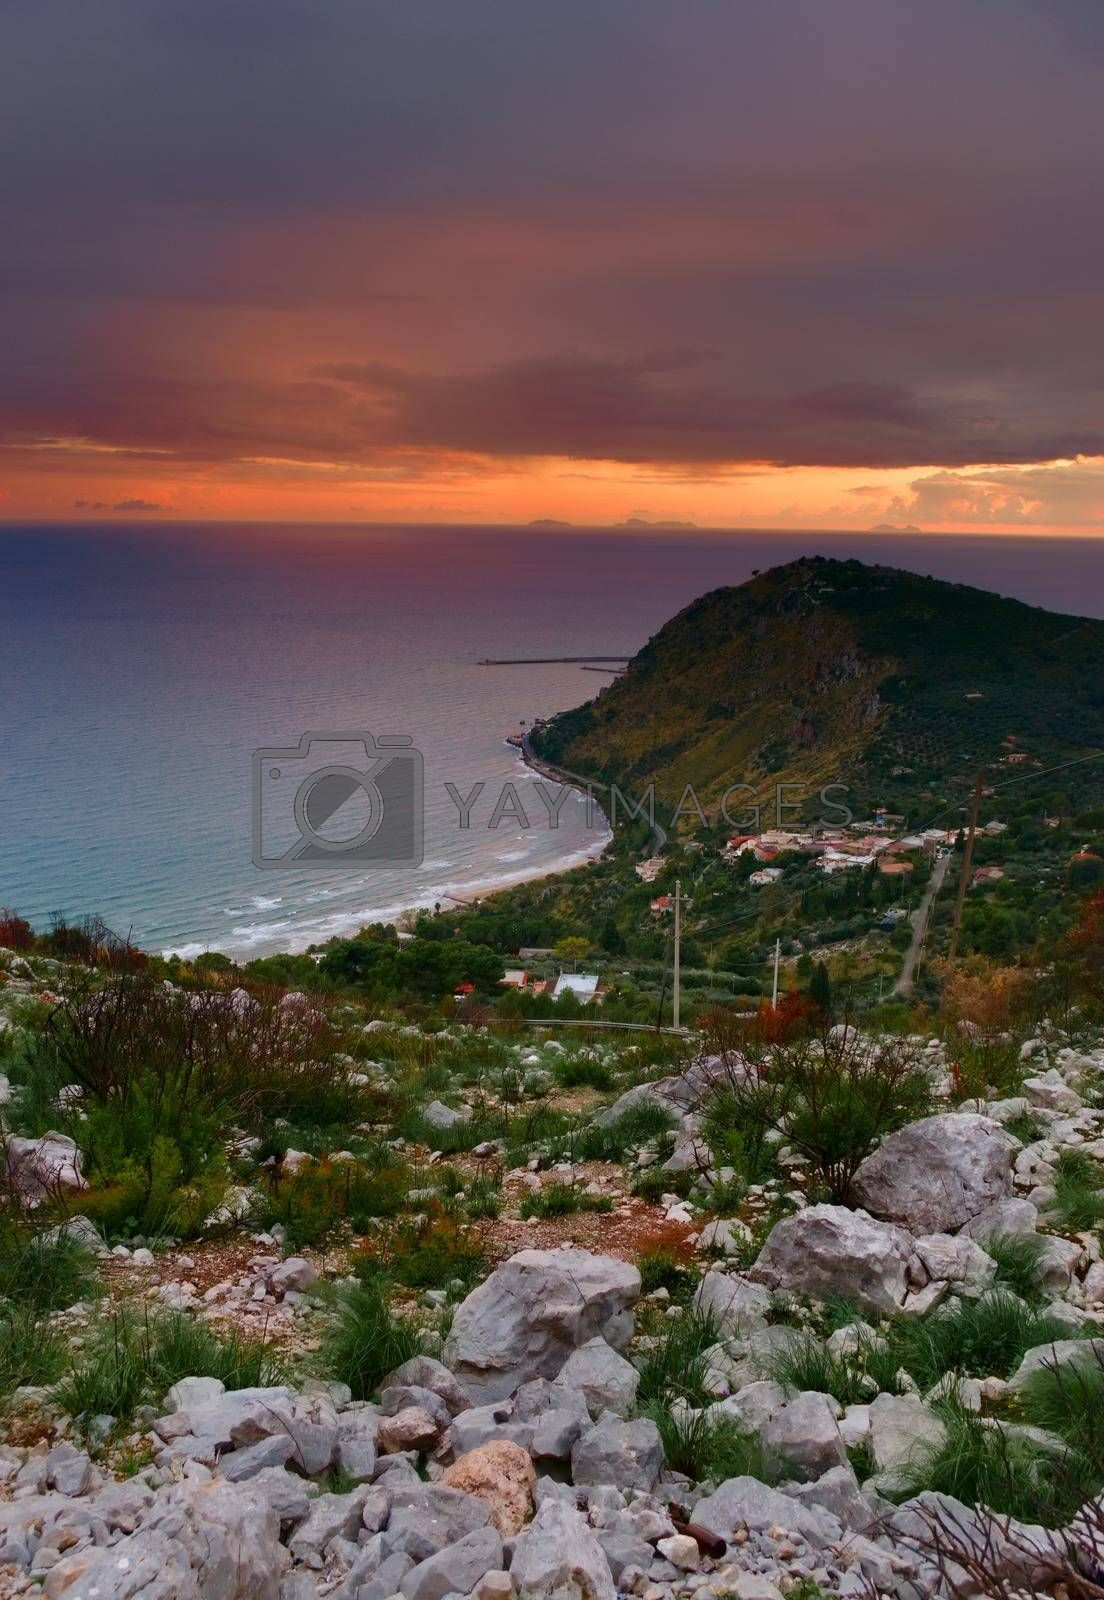 Royalty free image of Elevated view of the coast near Terracina, Italy, at sunset. by hernan_hyper